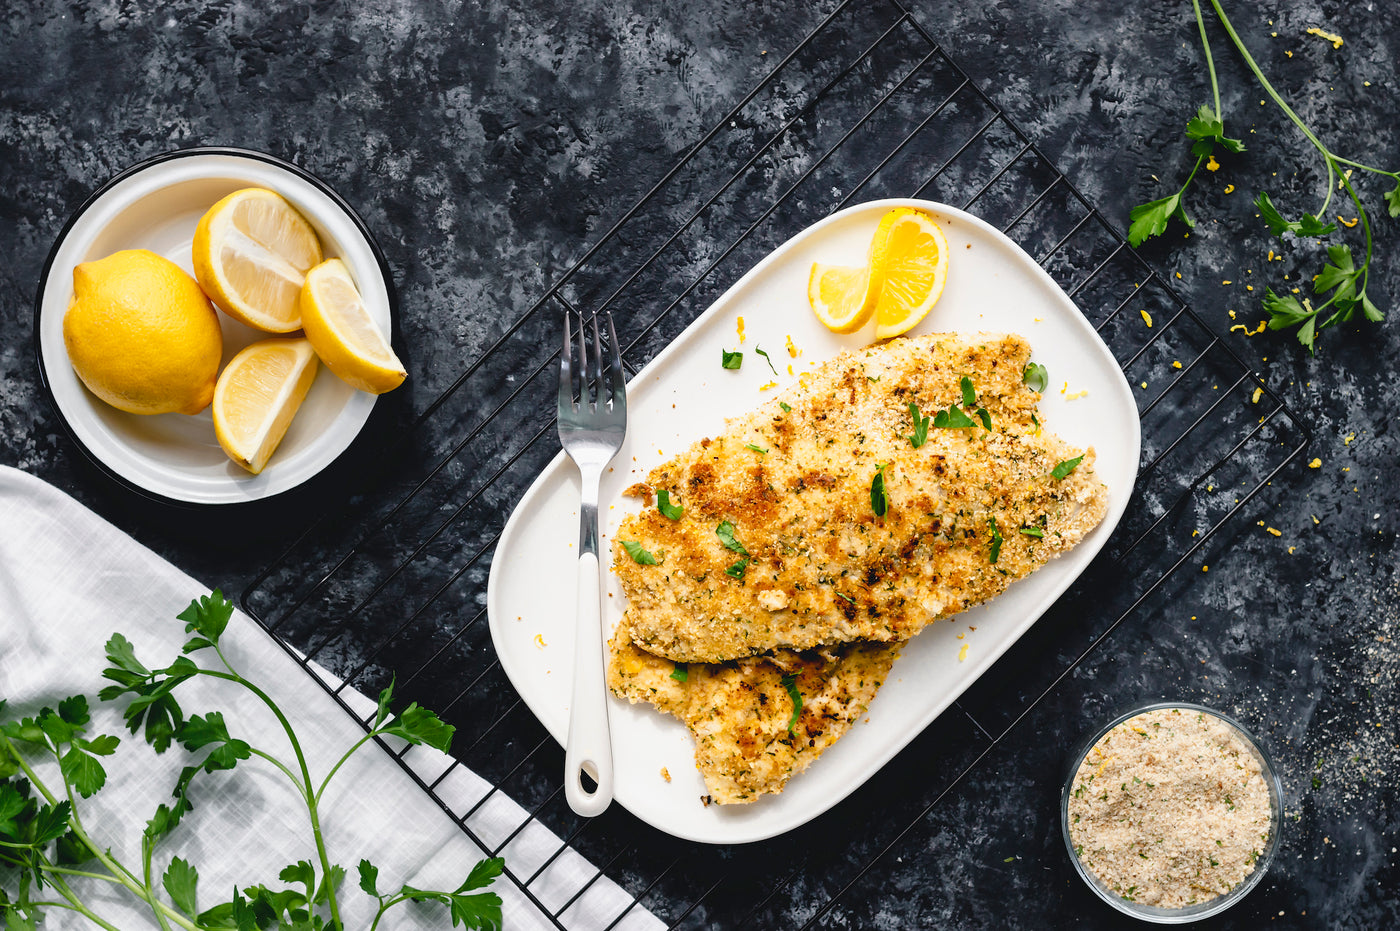 Friday Fakeaway Recipe: Healthy Fish & Chips